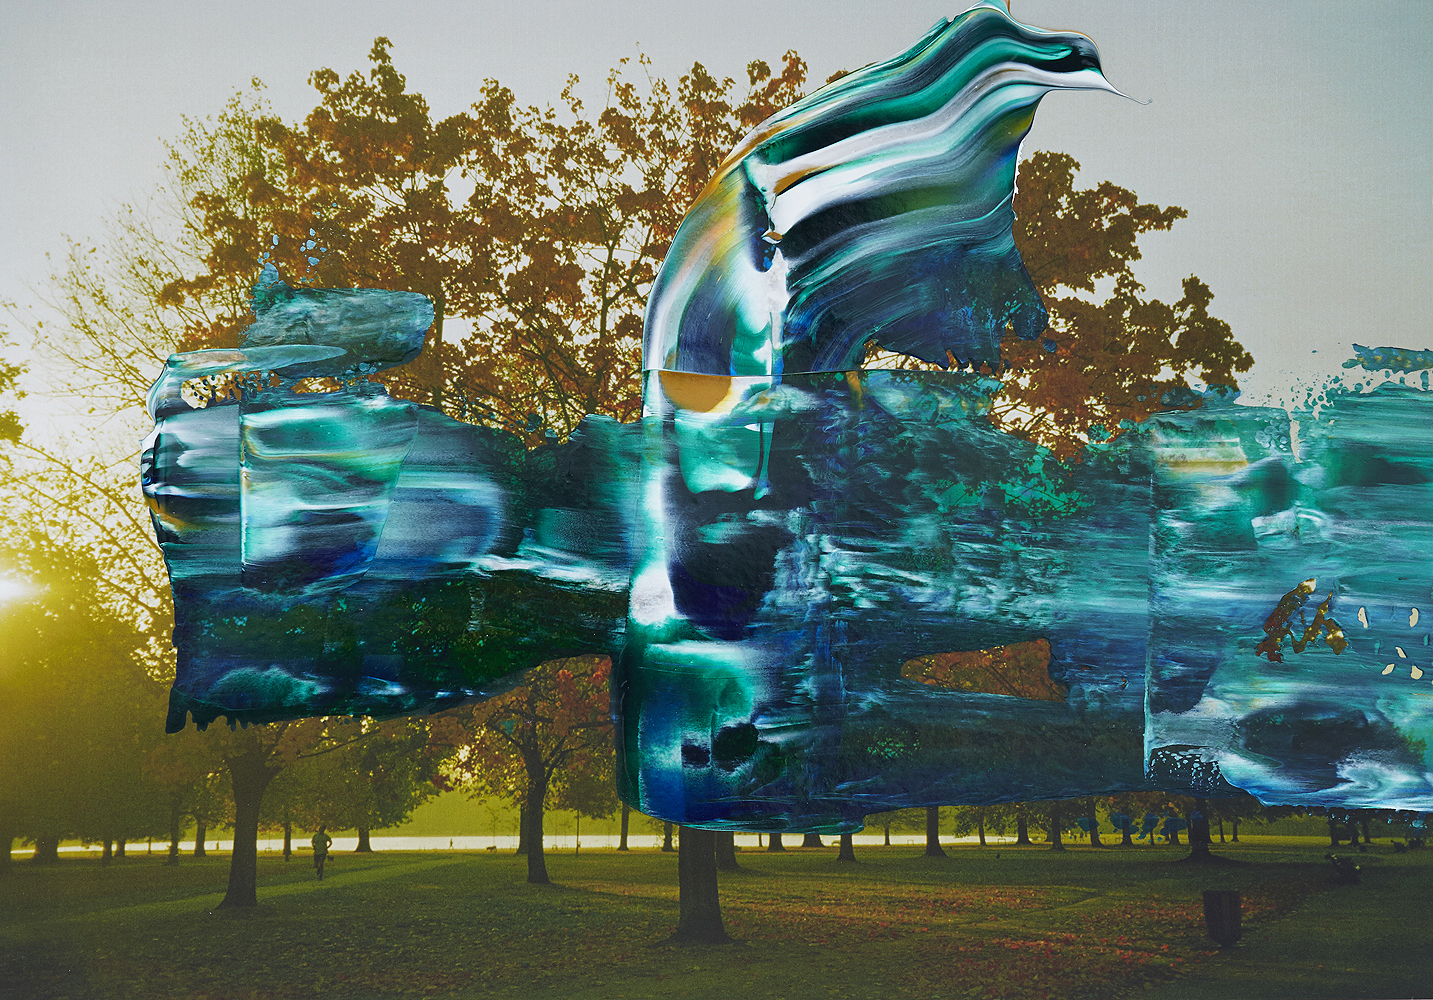 #painting-#photography#fineart#popart-#peterwesth-Peter Westh-@peterwesth-london-hydepark-trees-park